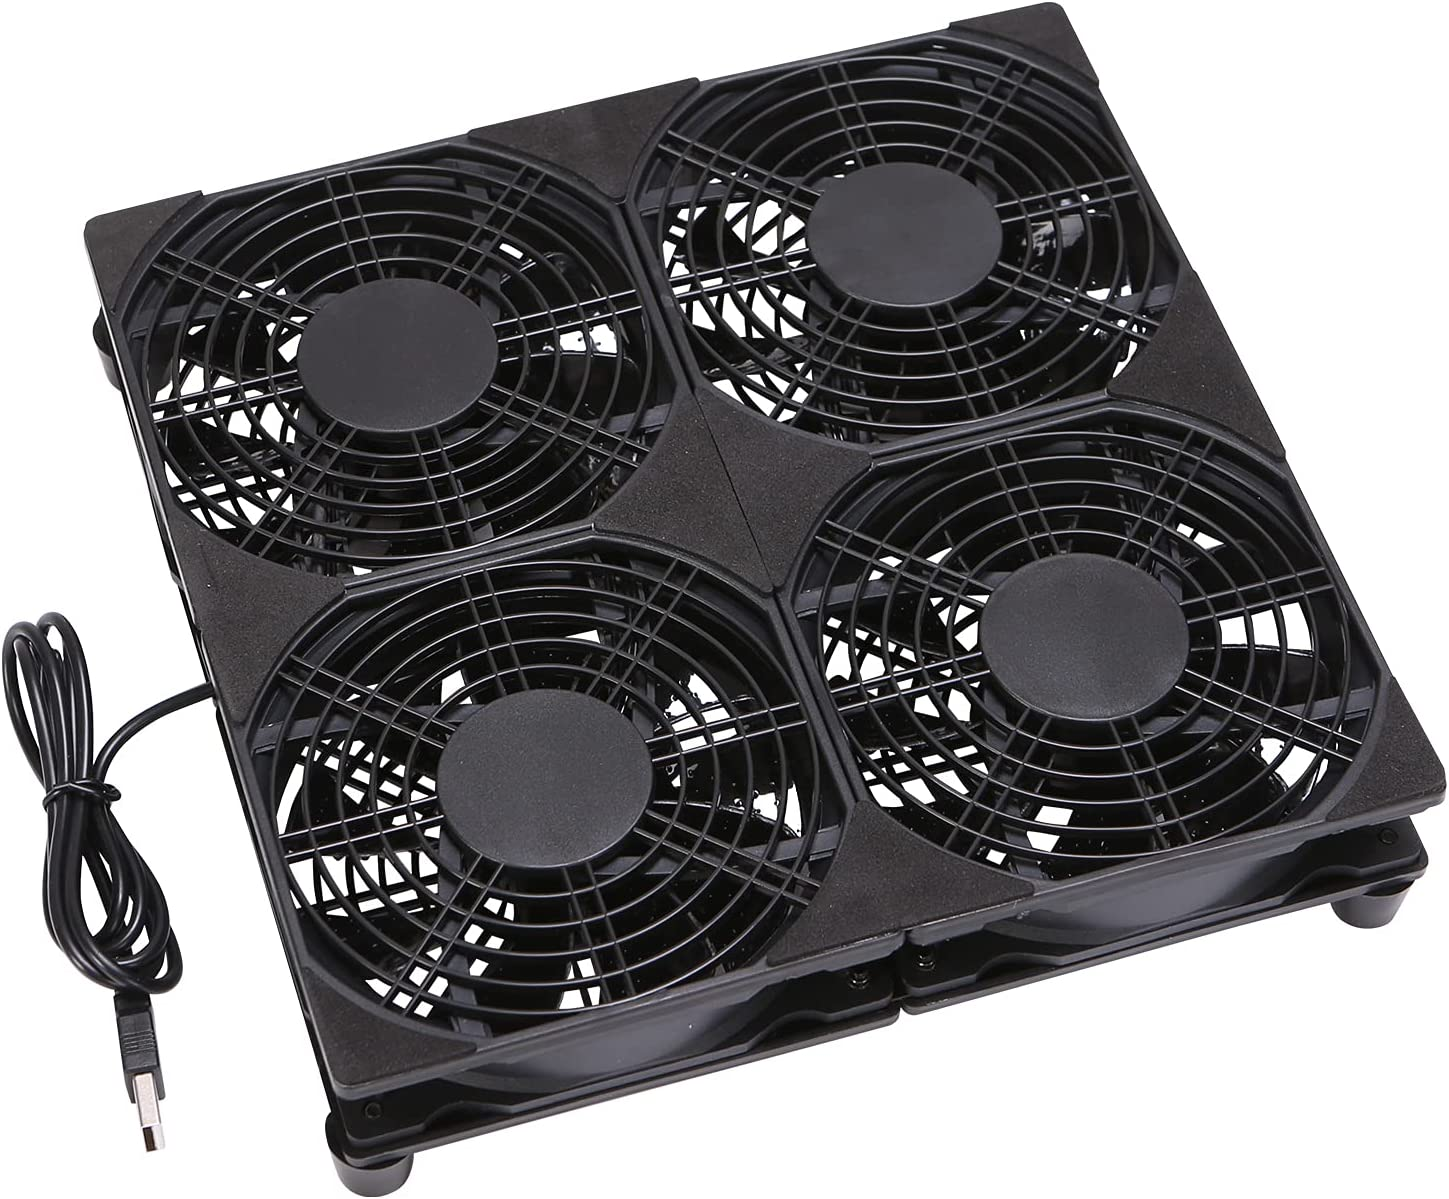 4x120mm 240mm 5V USB Powered Cooling Fan for Router Rack DIY Audio Video Network Cabinet Server Cooling Projects and Equipment Workstation Mining Machine Laptop Cooling Fan Stand